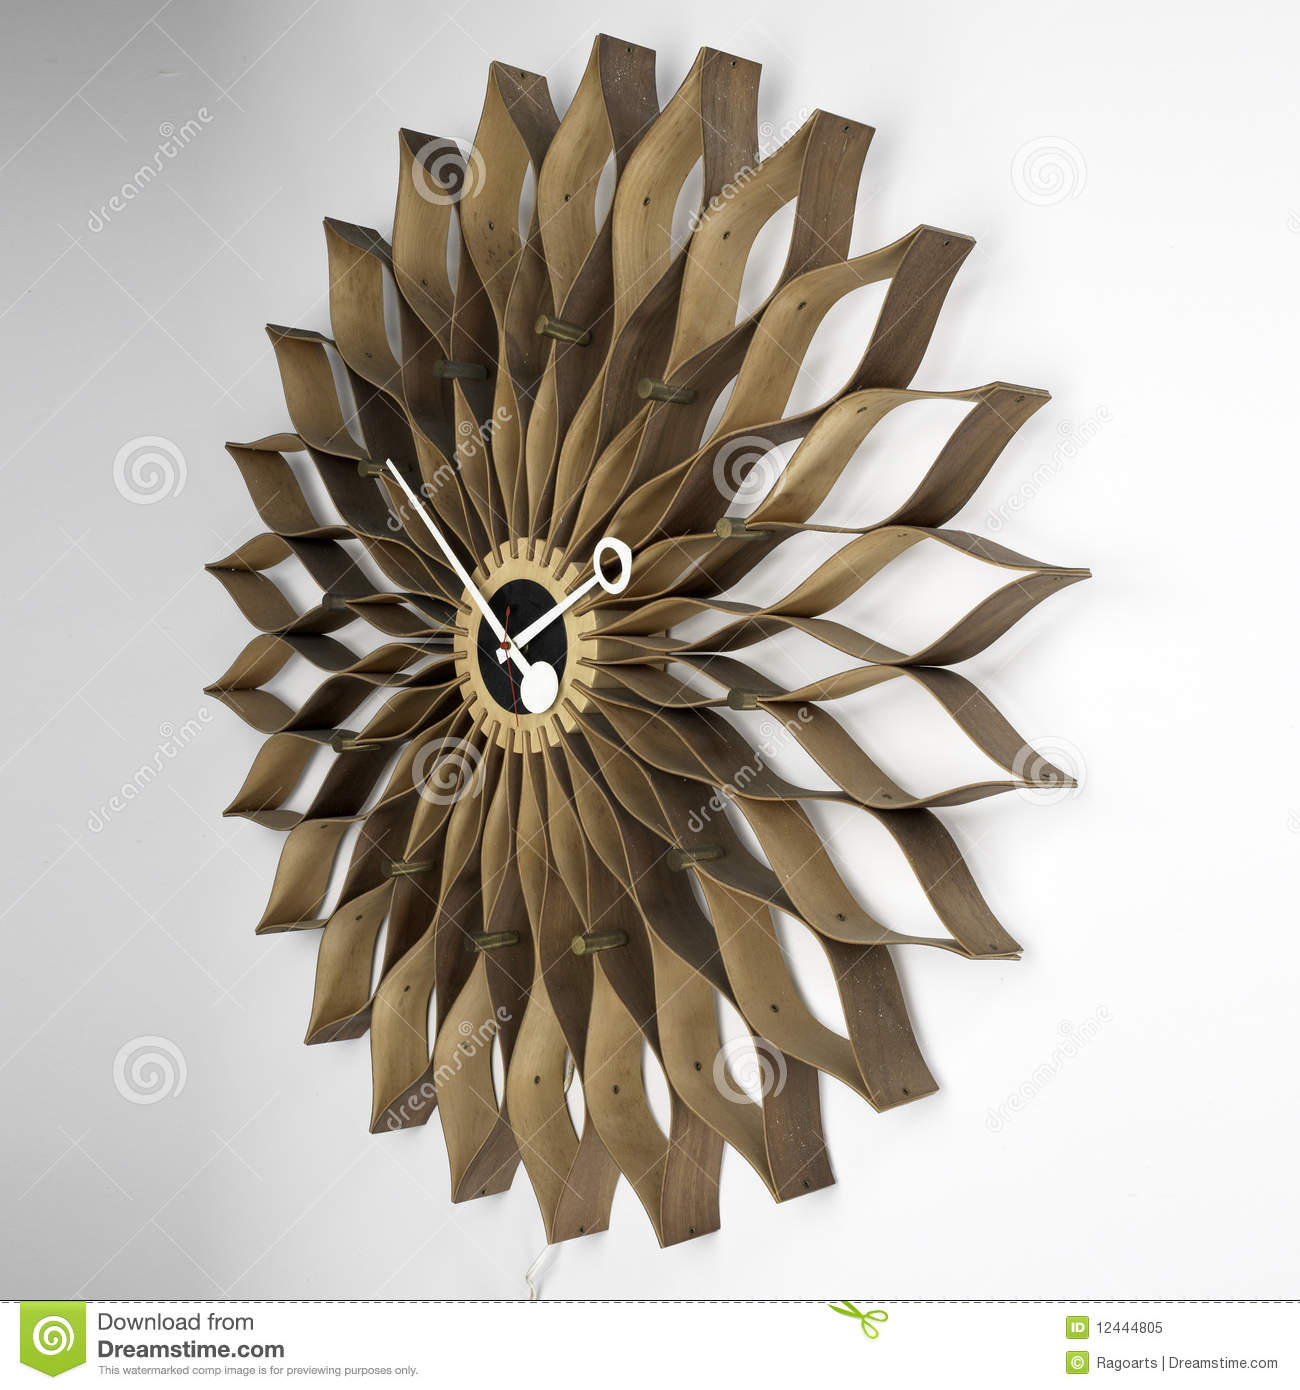 Reloj de pared moderno imagen editorial imagen de - Relojes de pared originales decoracion ...